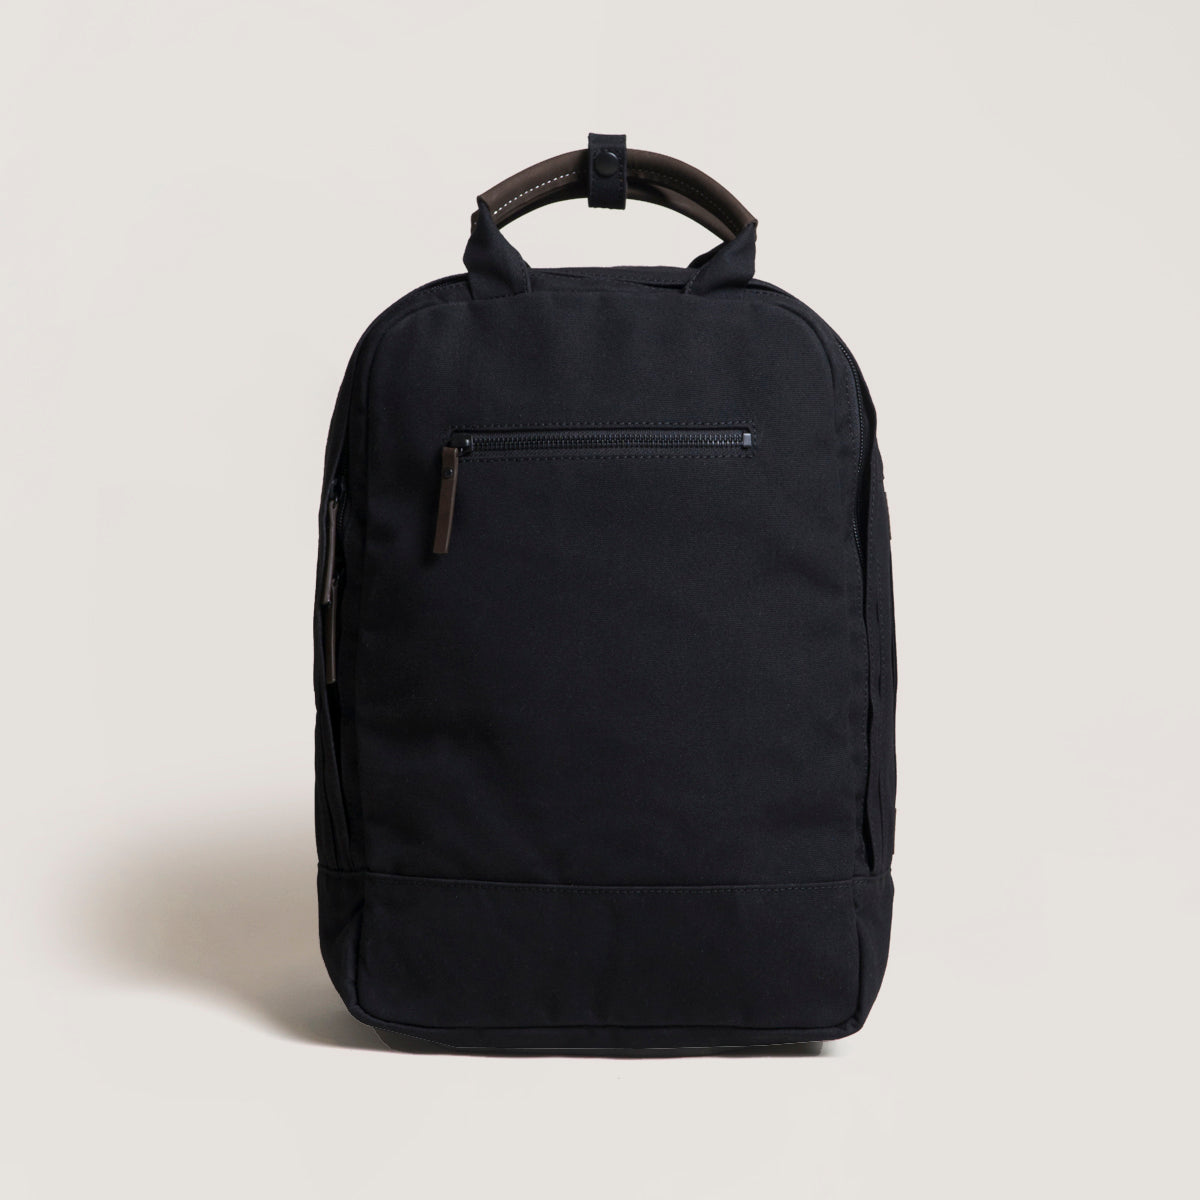 Kickstarter Backpack